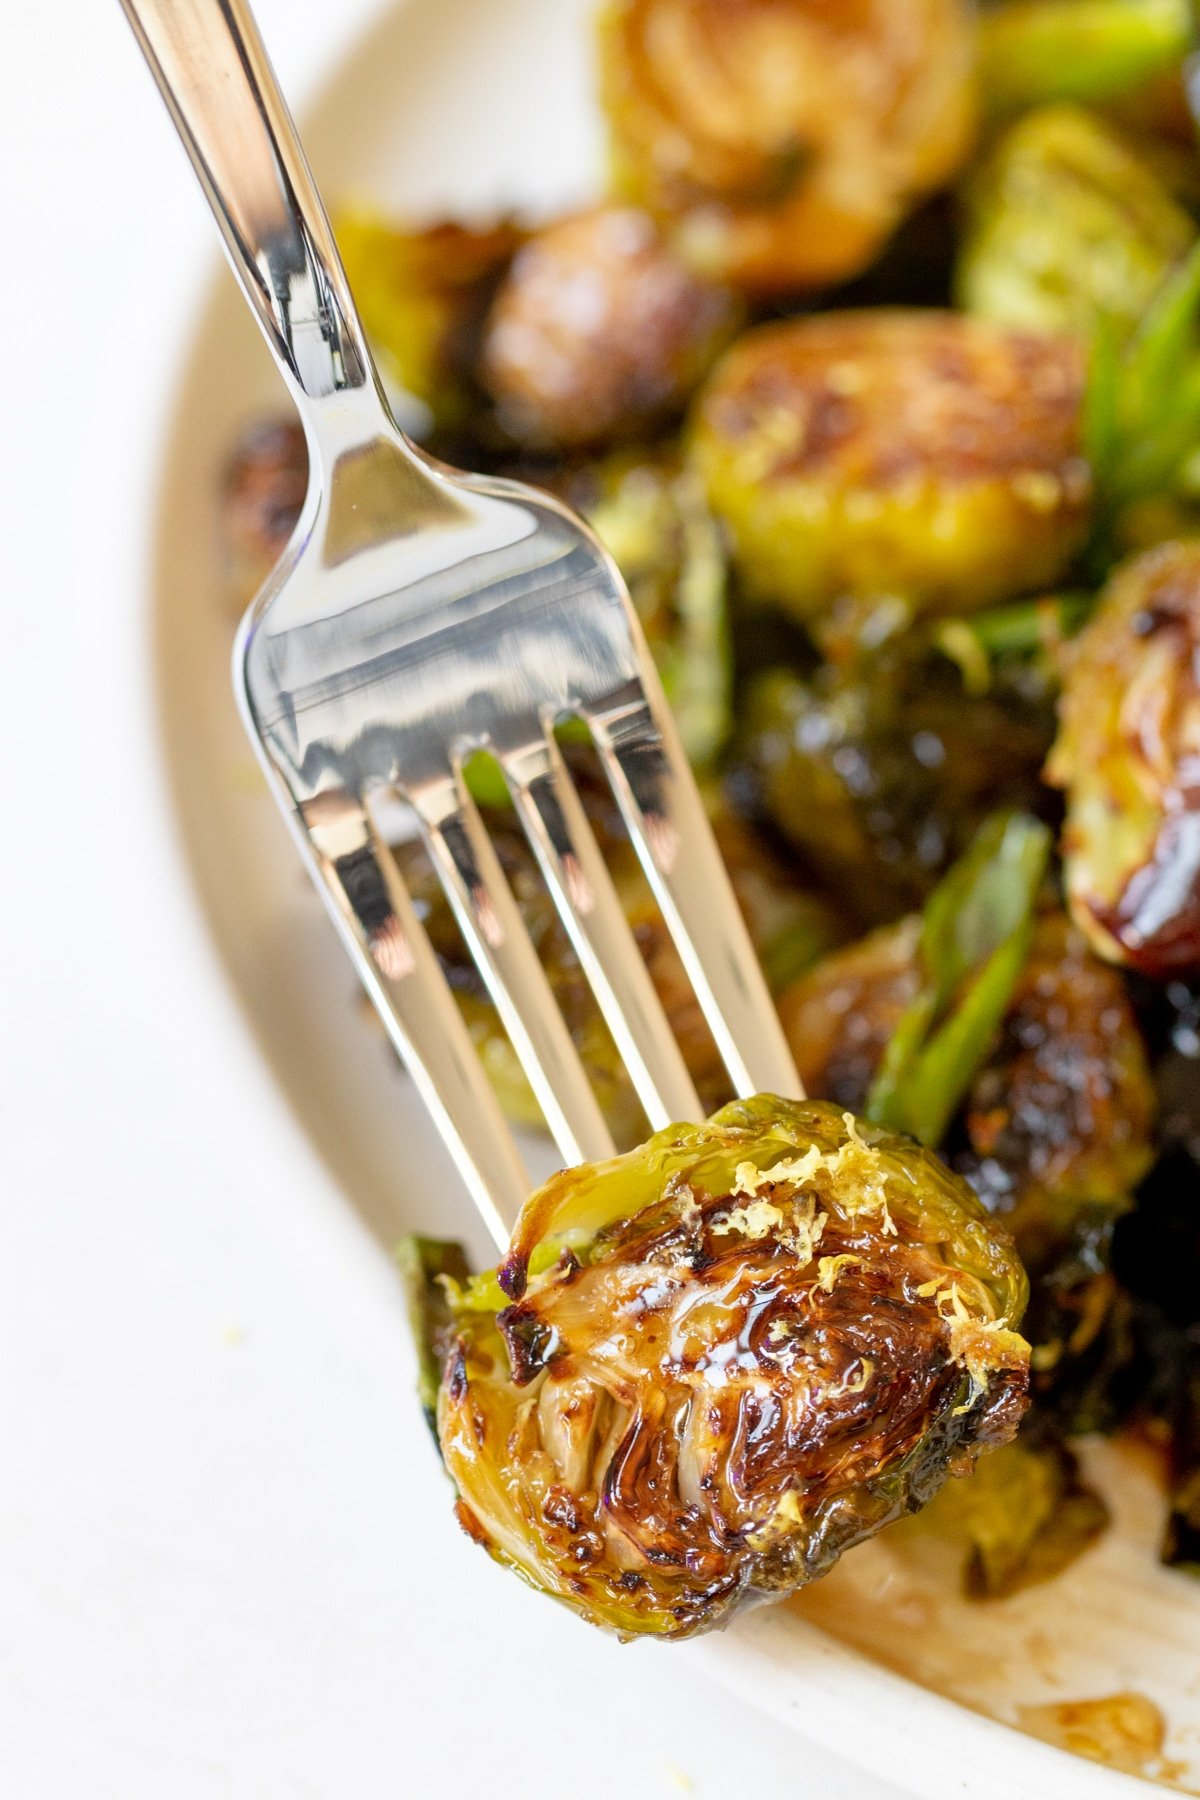 a fork inserted into a roasted brussels sprout